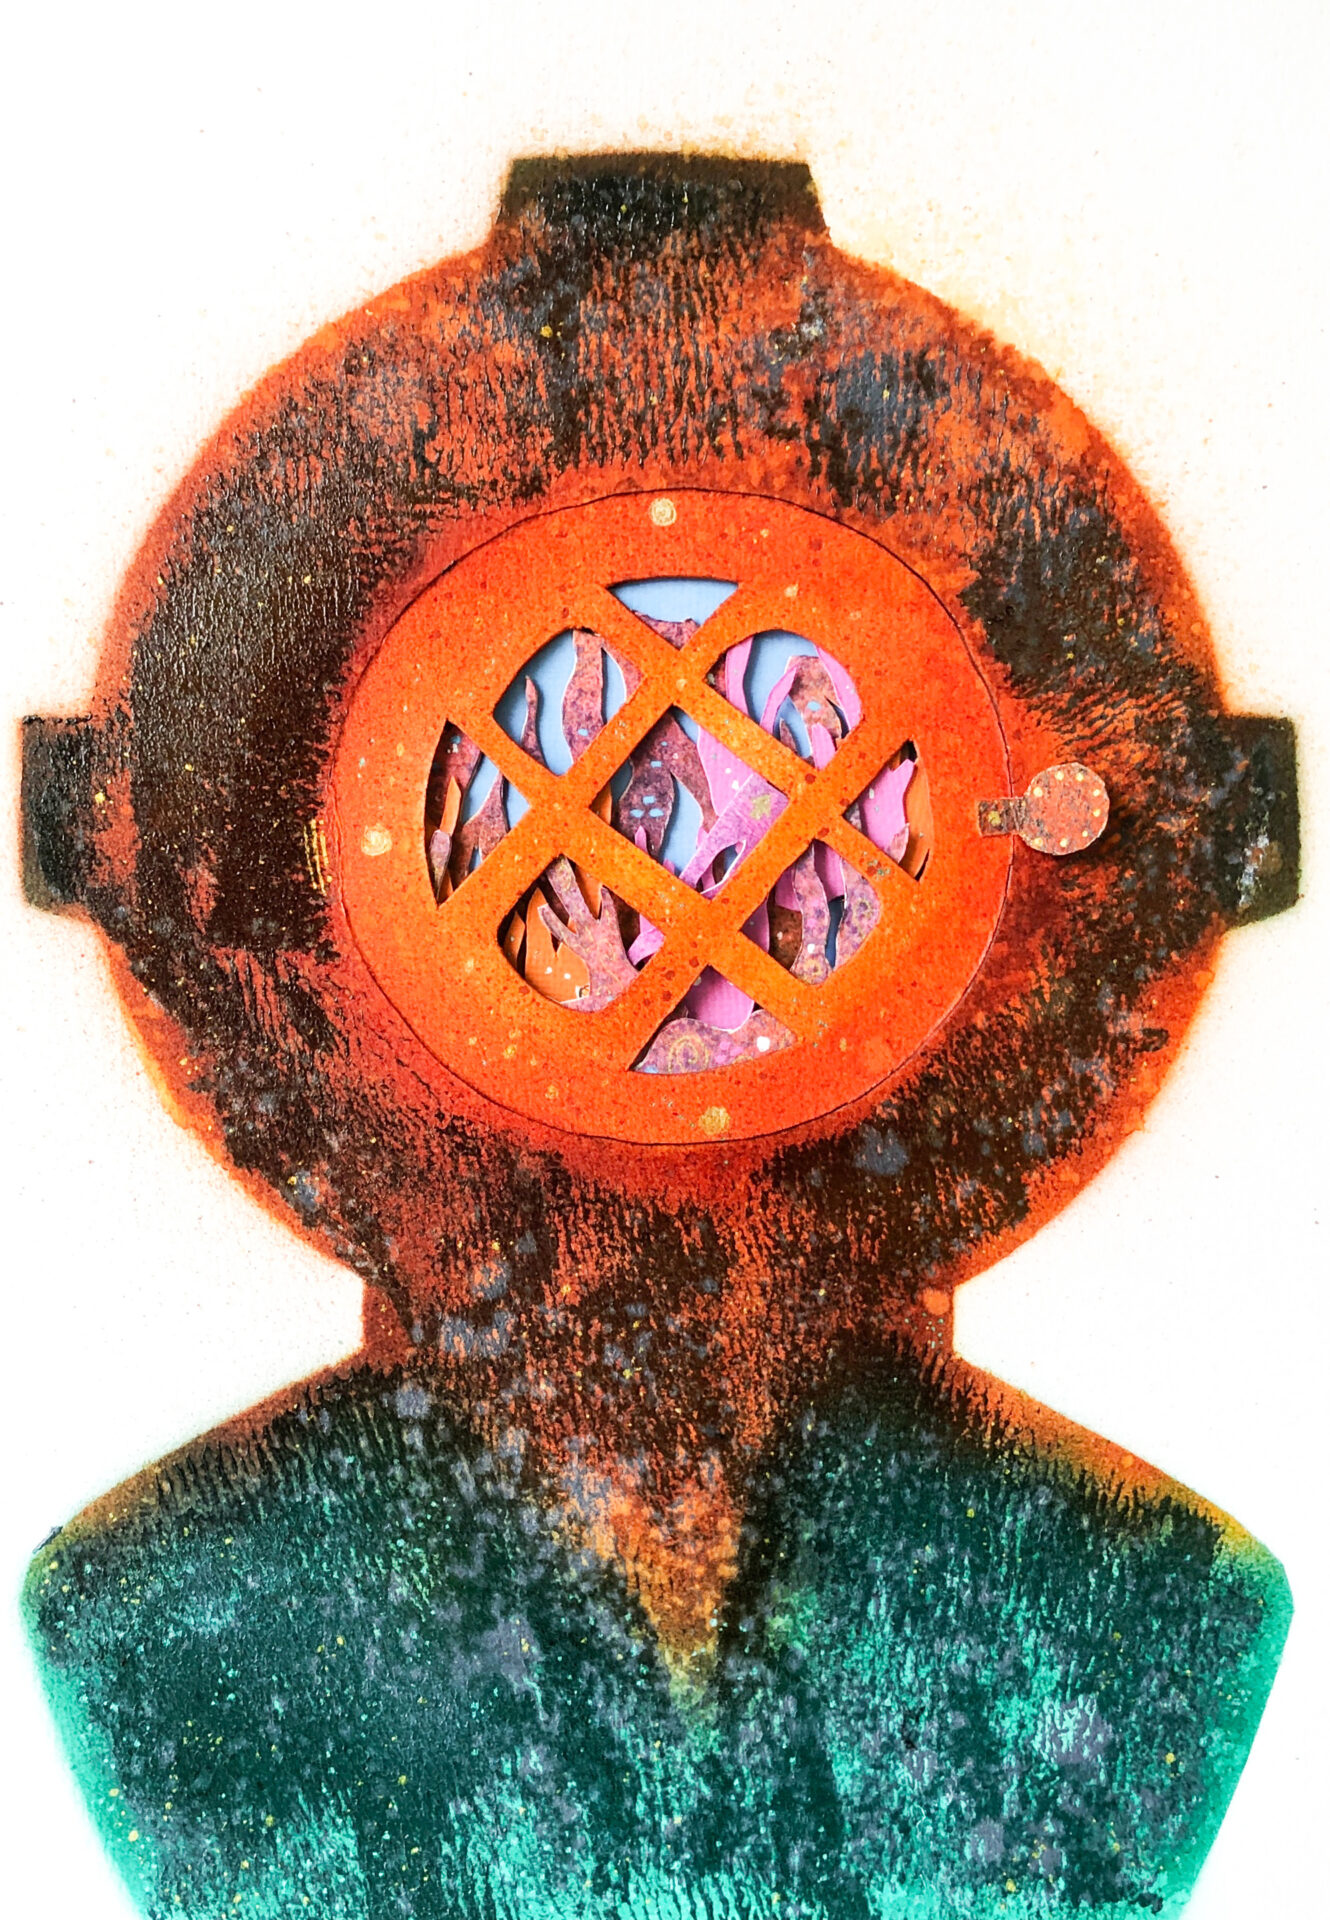 Diver Helmet By Manny Sison Showing In Works On Paper